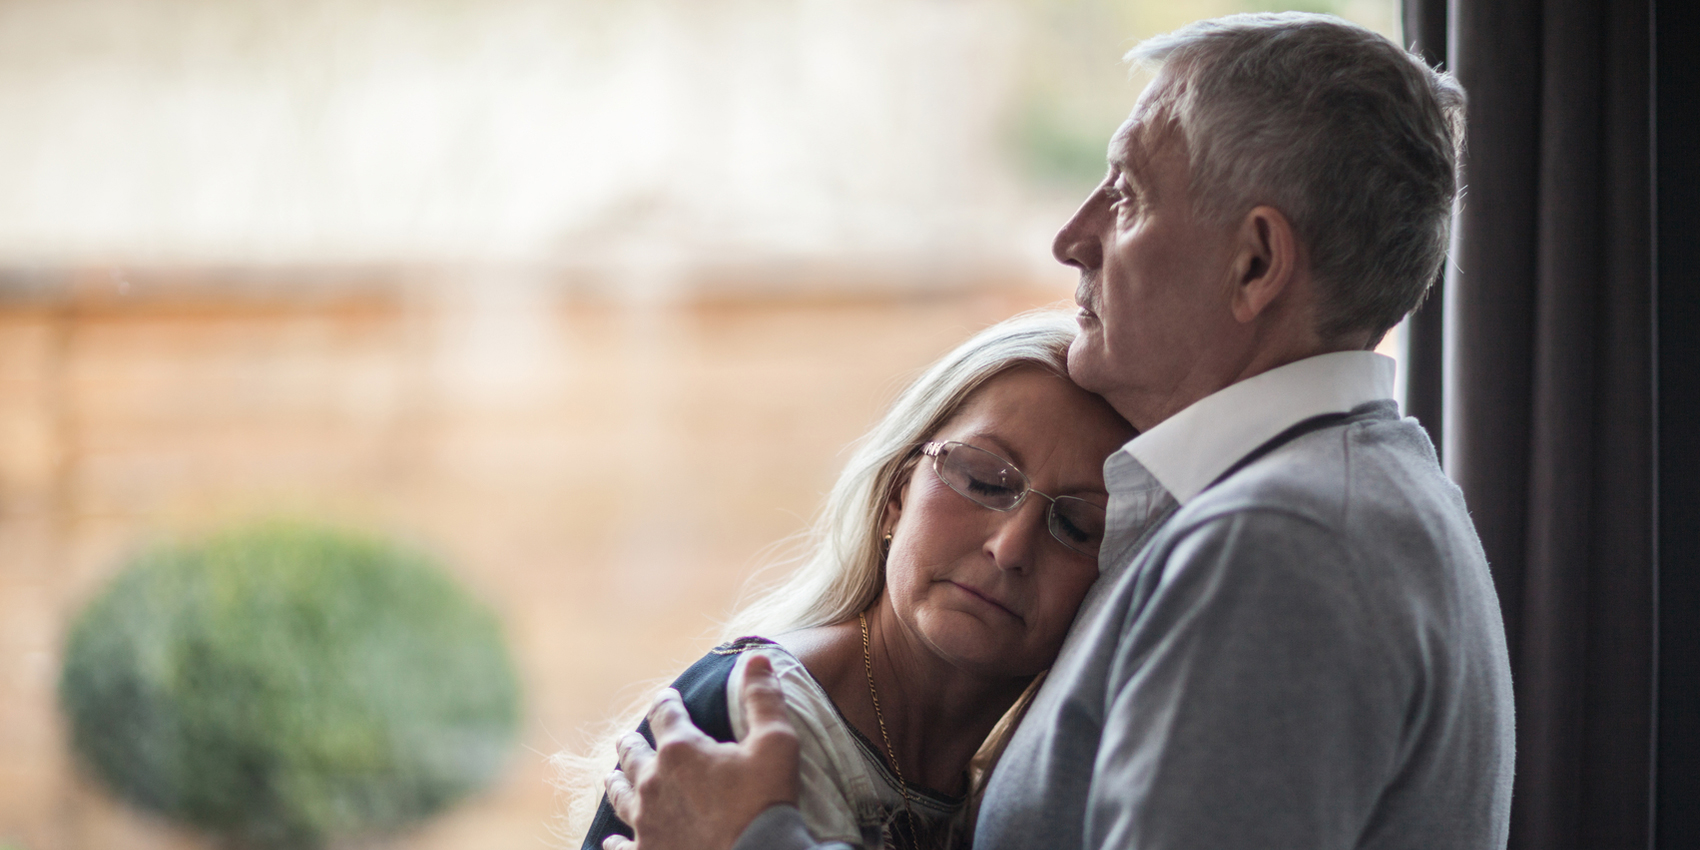 wife resting head on husband's chest